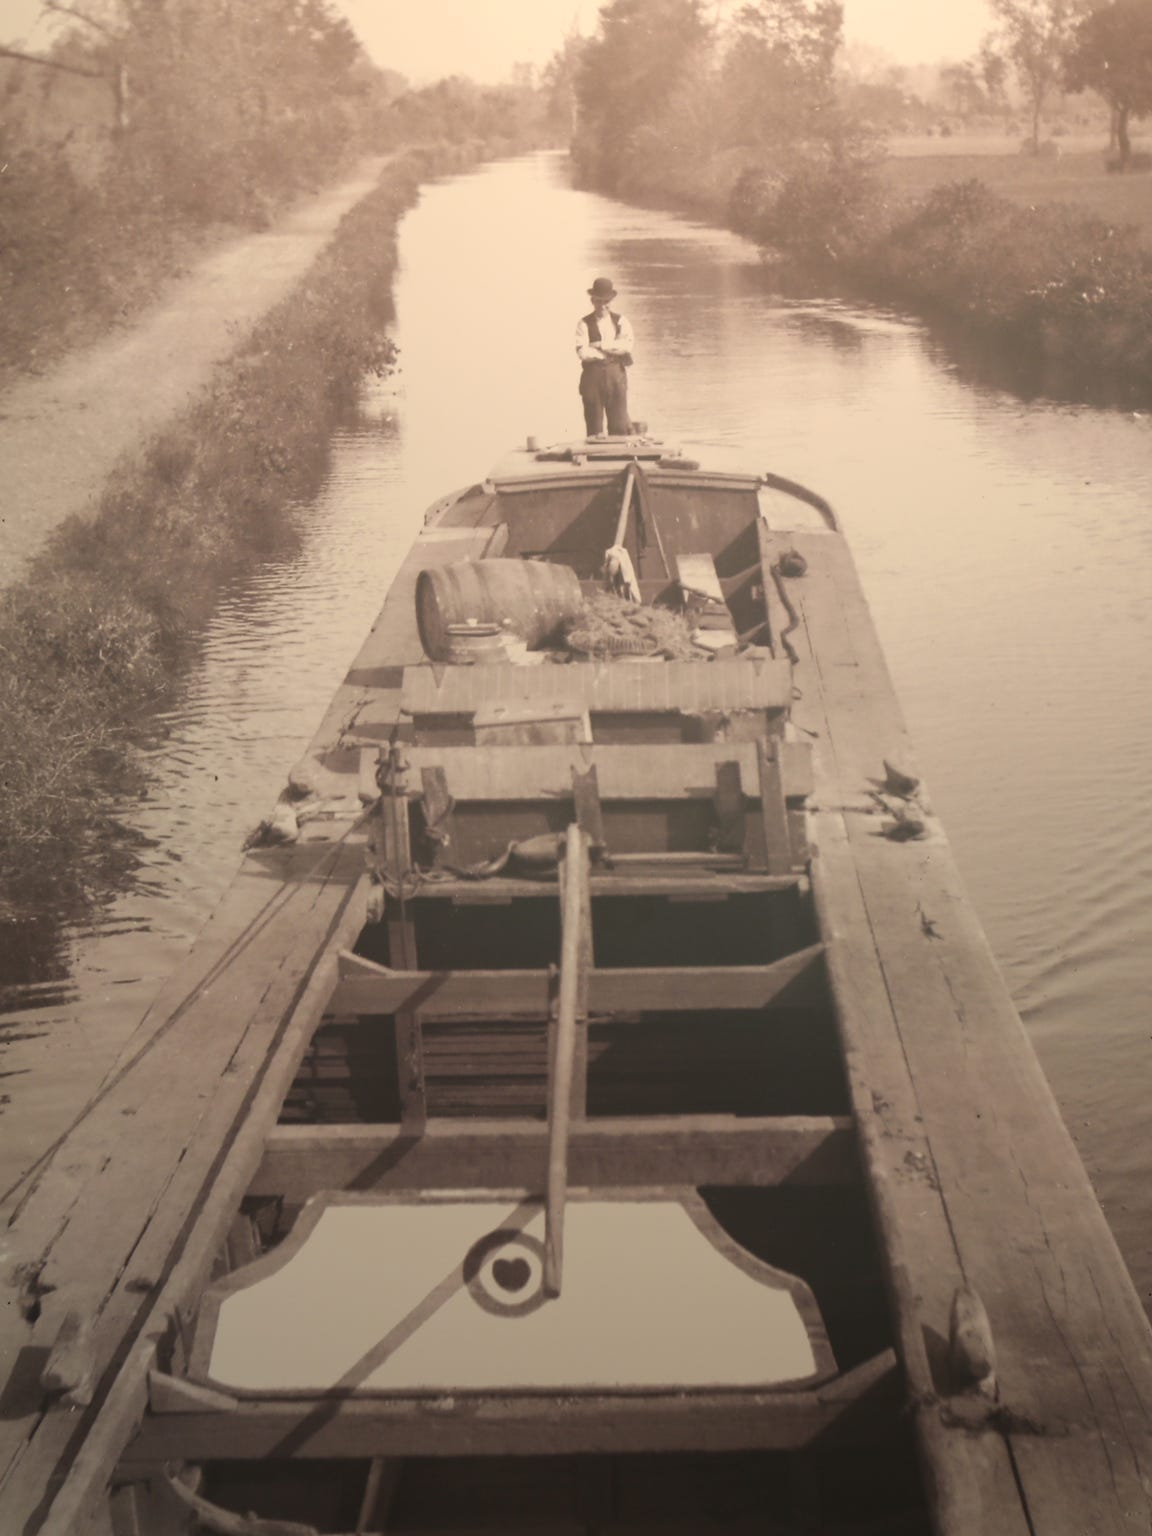 An old photo of a boat on the canal.